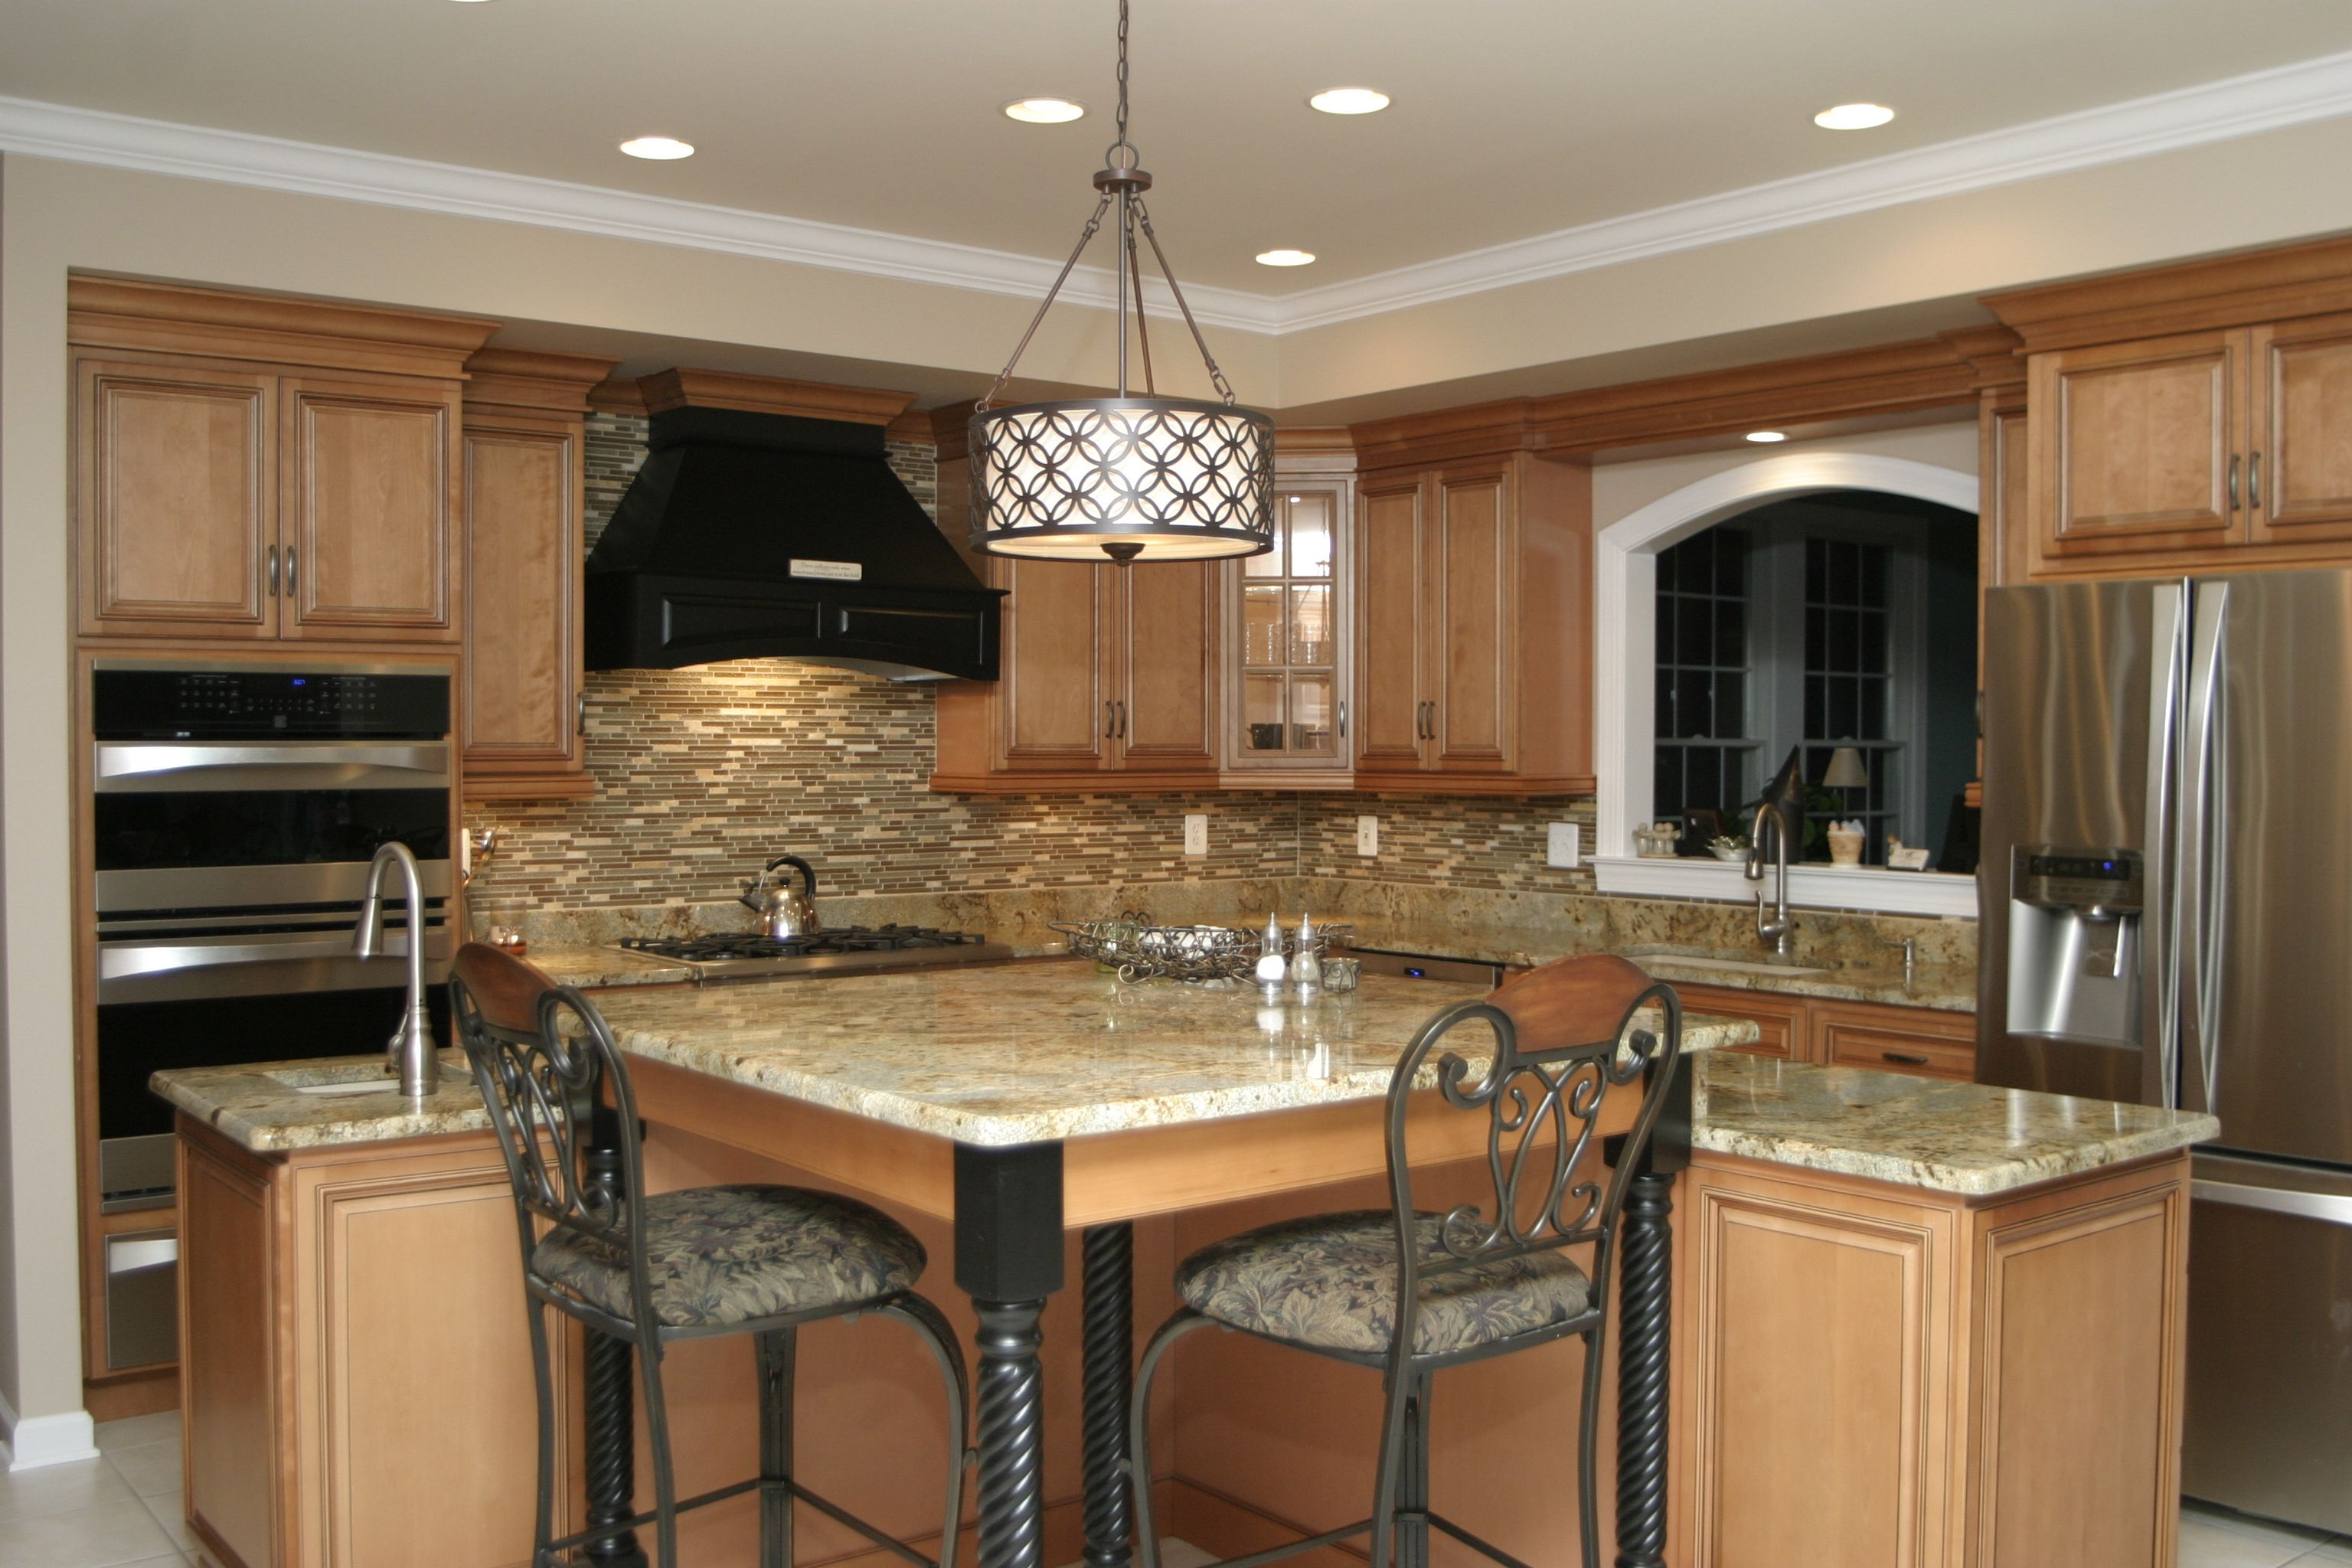 Superieur Alexander Kitchen Project Allure Kitchens #allurekitchens